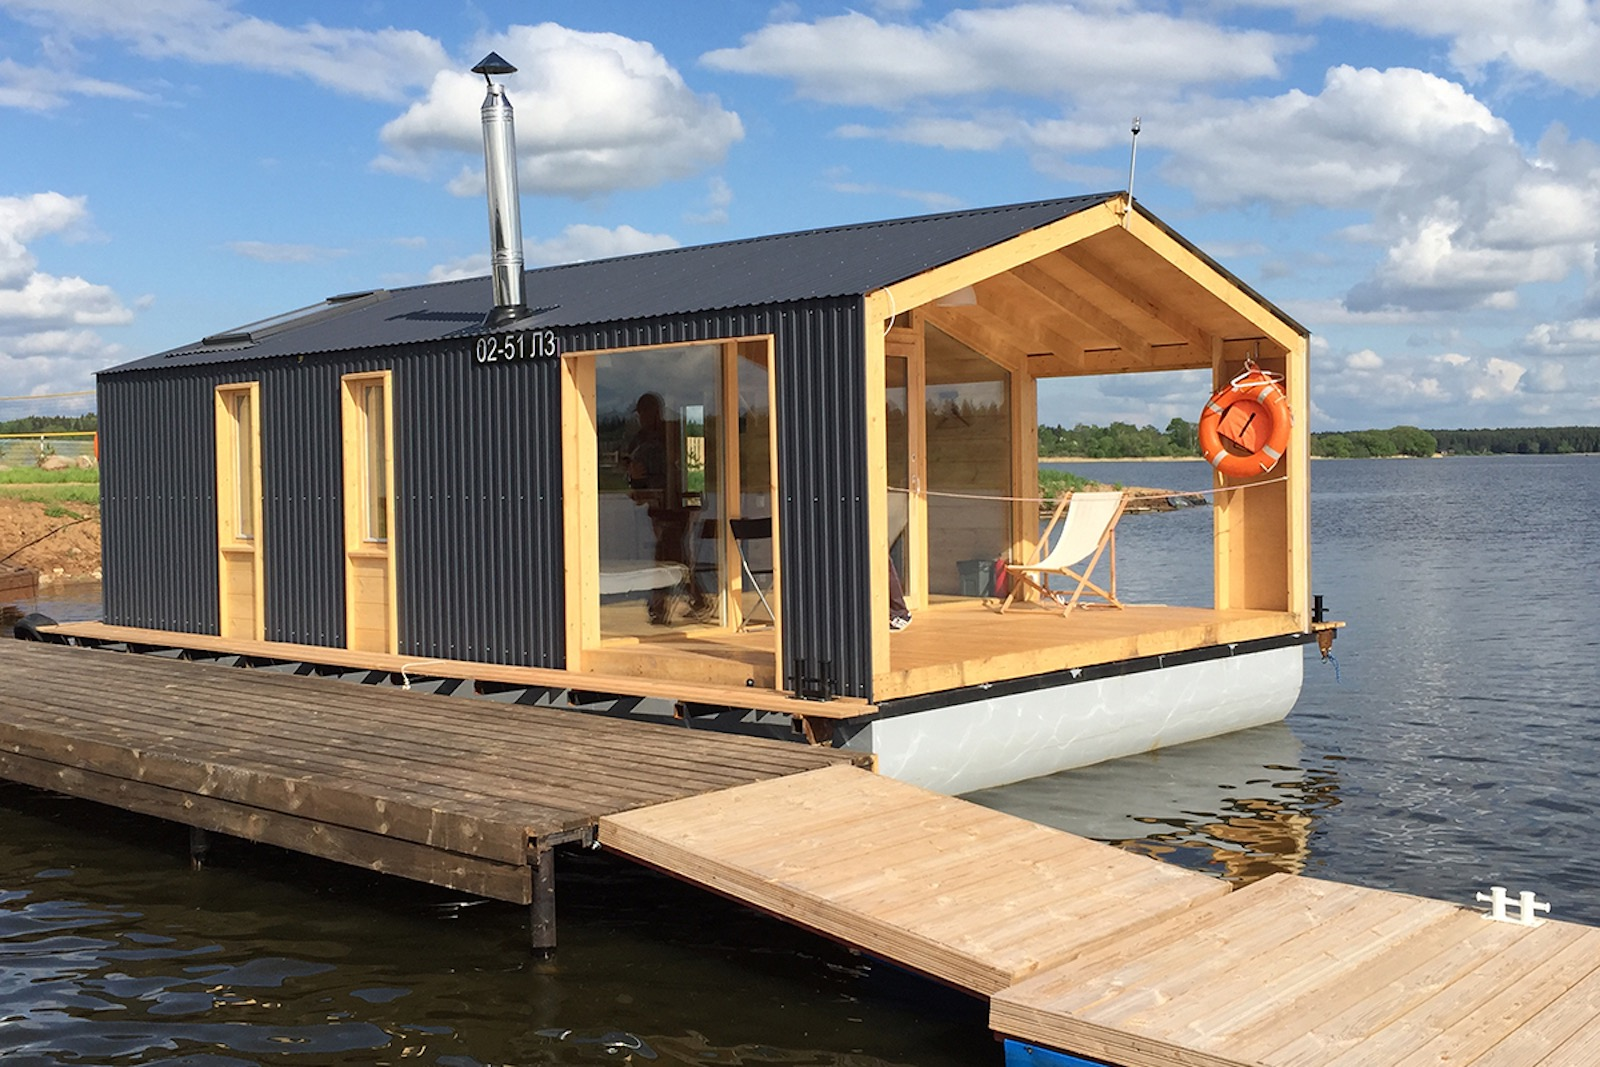 Captivating DublDom Houseboat, A Modular Floating Cabin With A 280 Sq Ft Studio Floor  Plan.